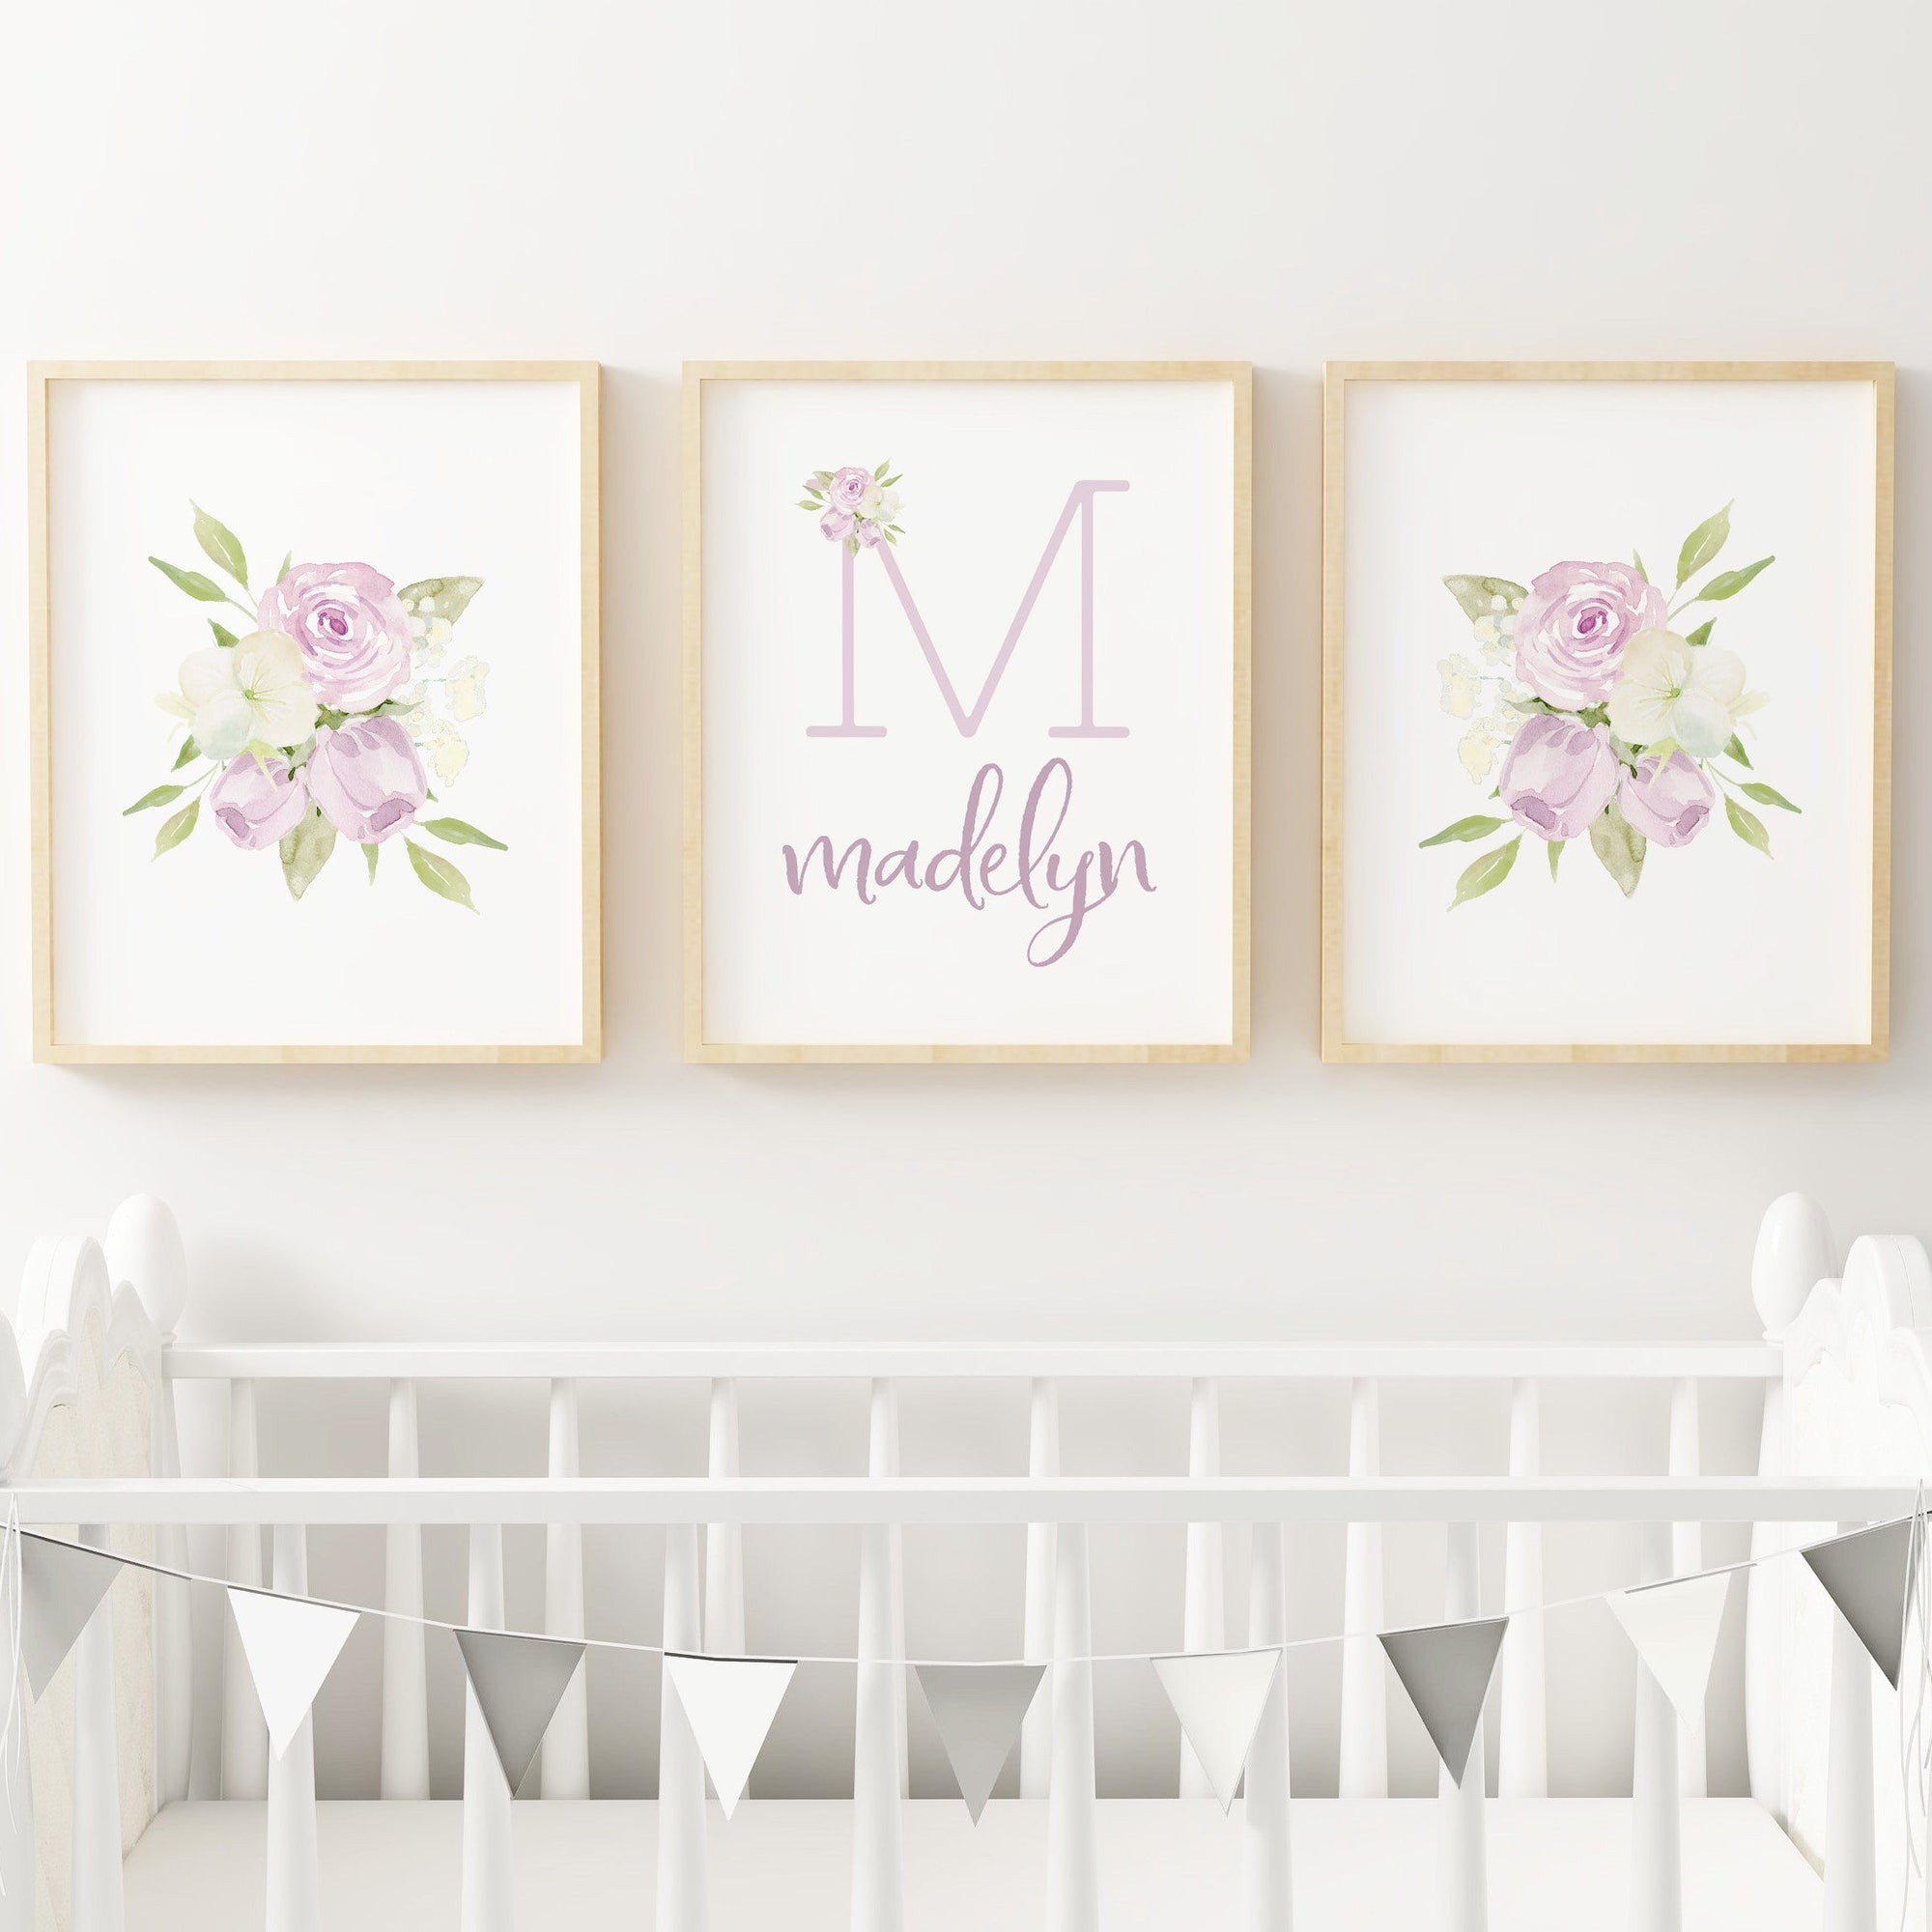 Lavender #7 // Set of 3 Prints Nursery Prints TheGracefulGoose